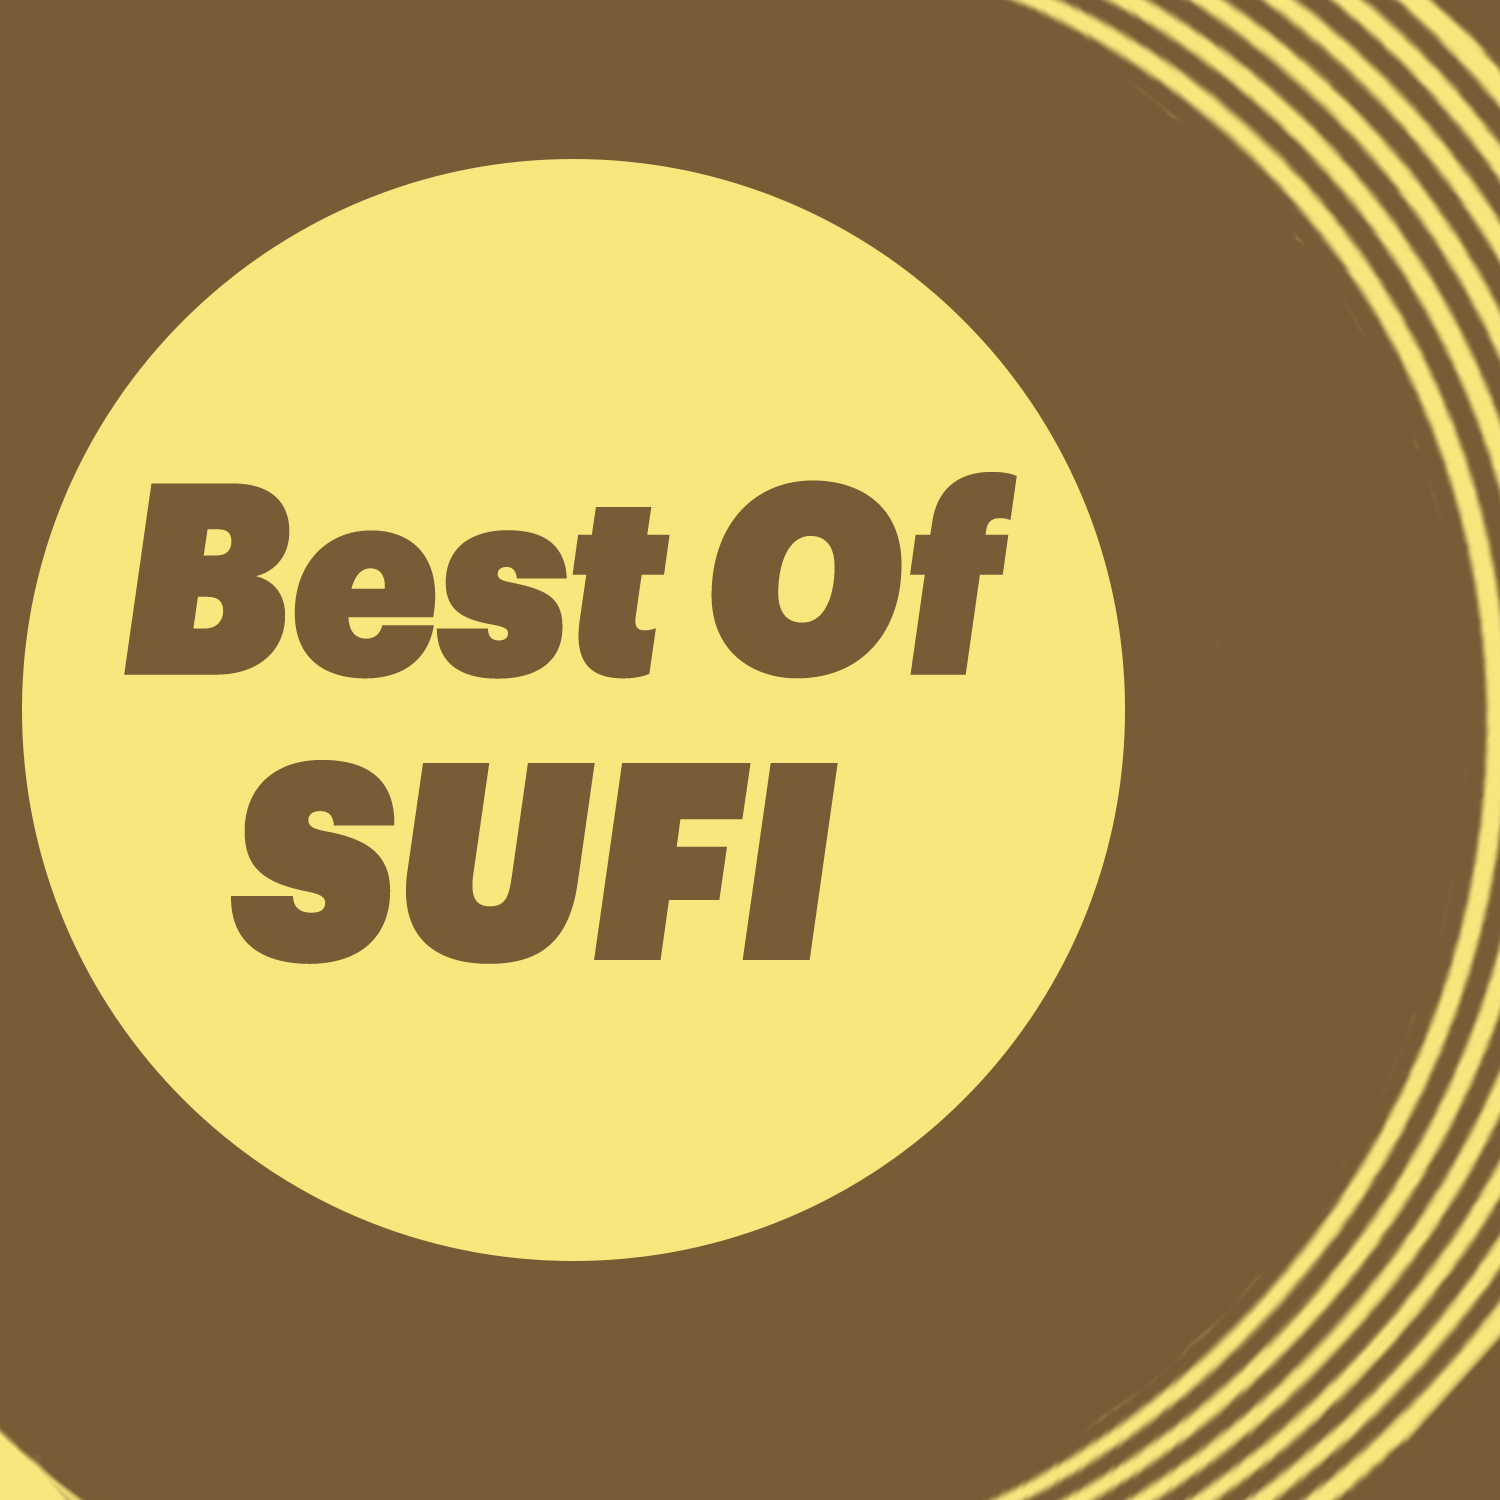 Best of Sufi,Songdew